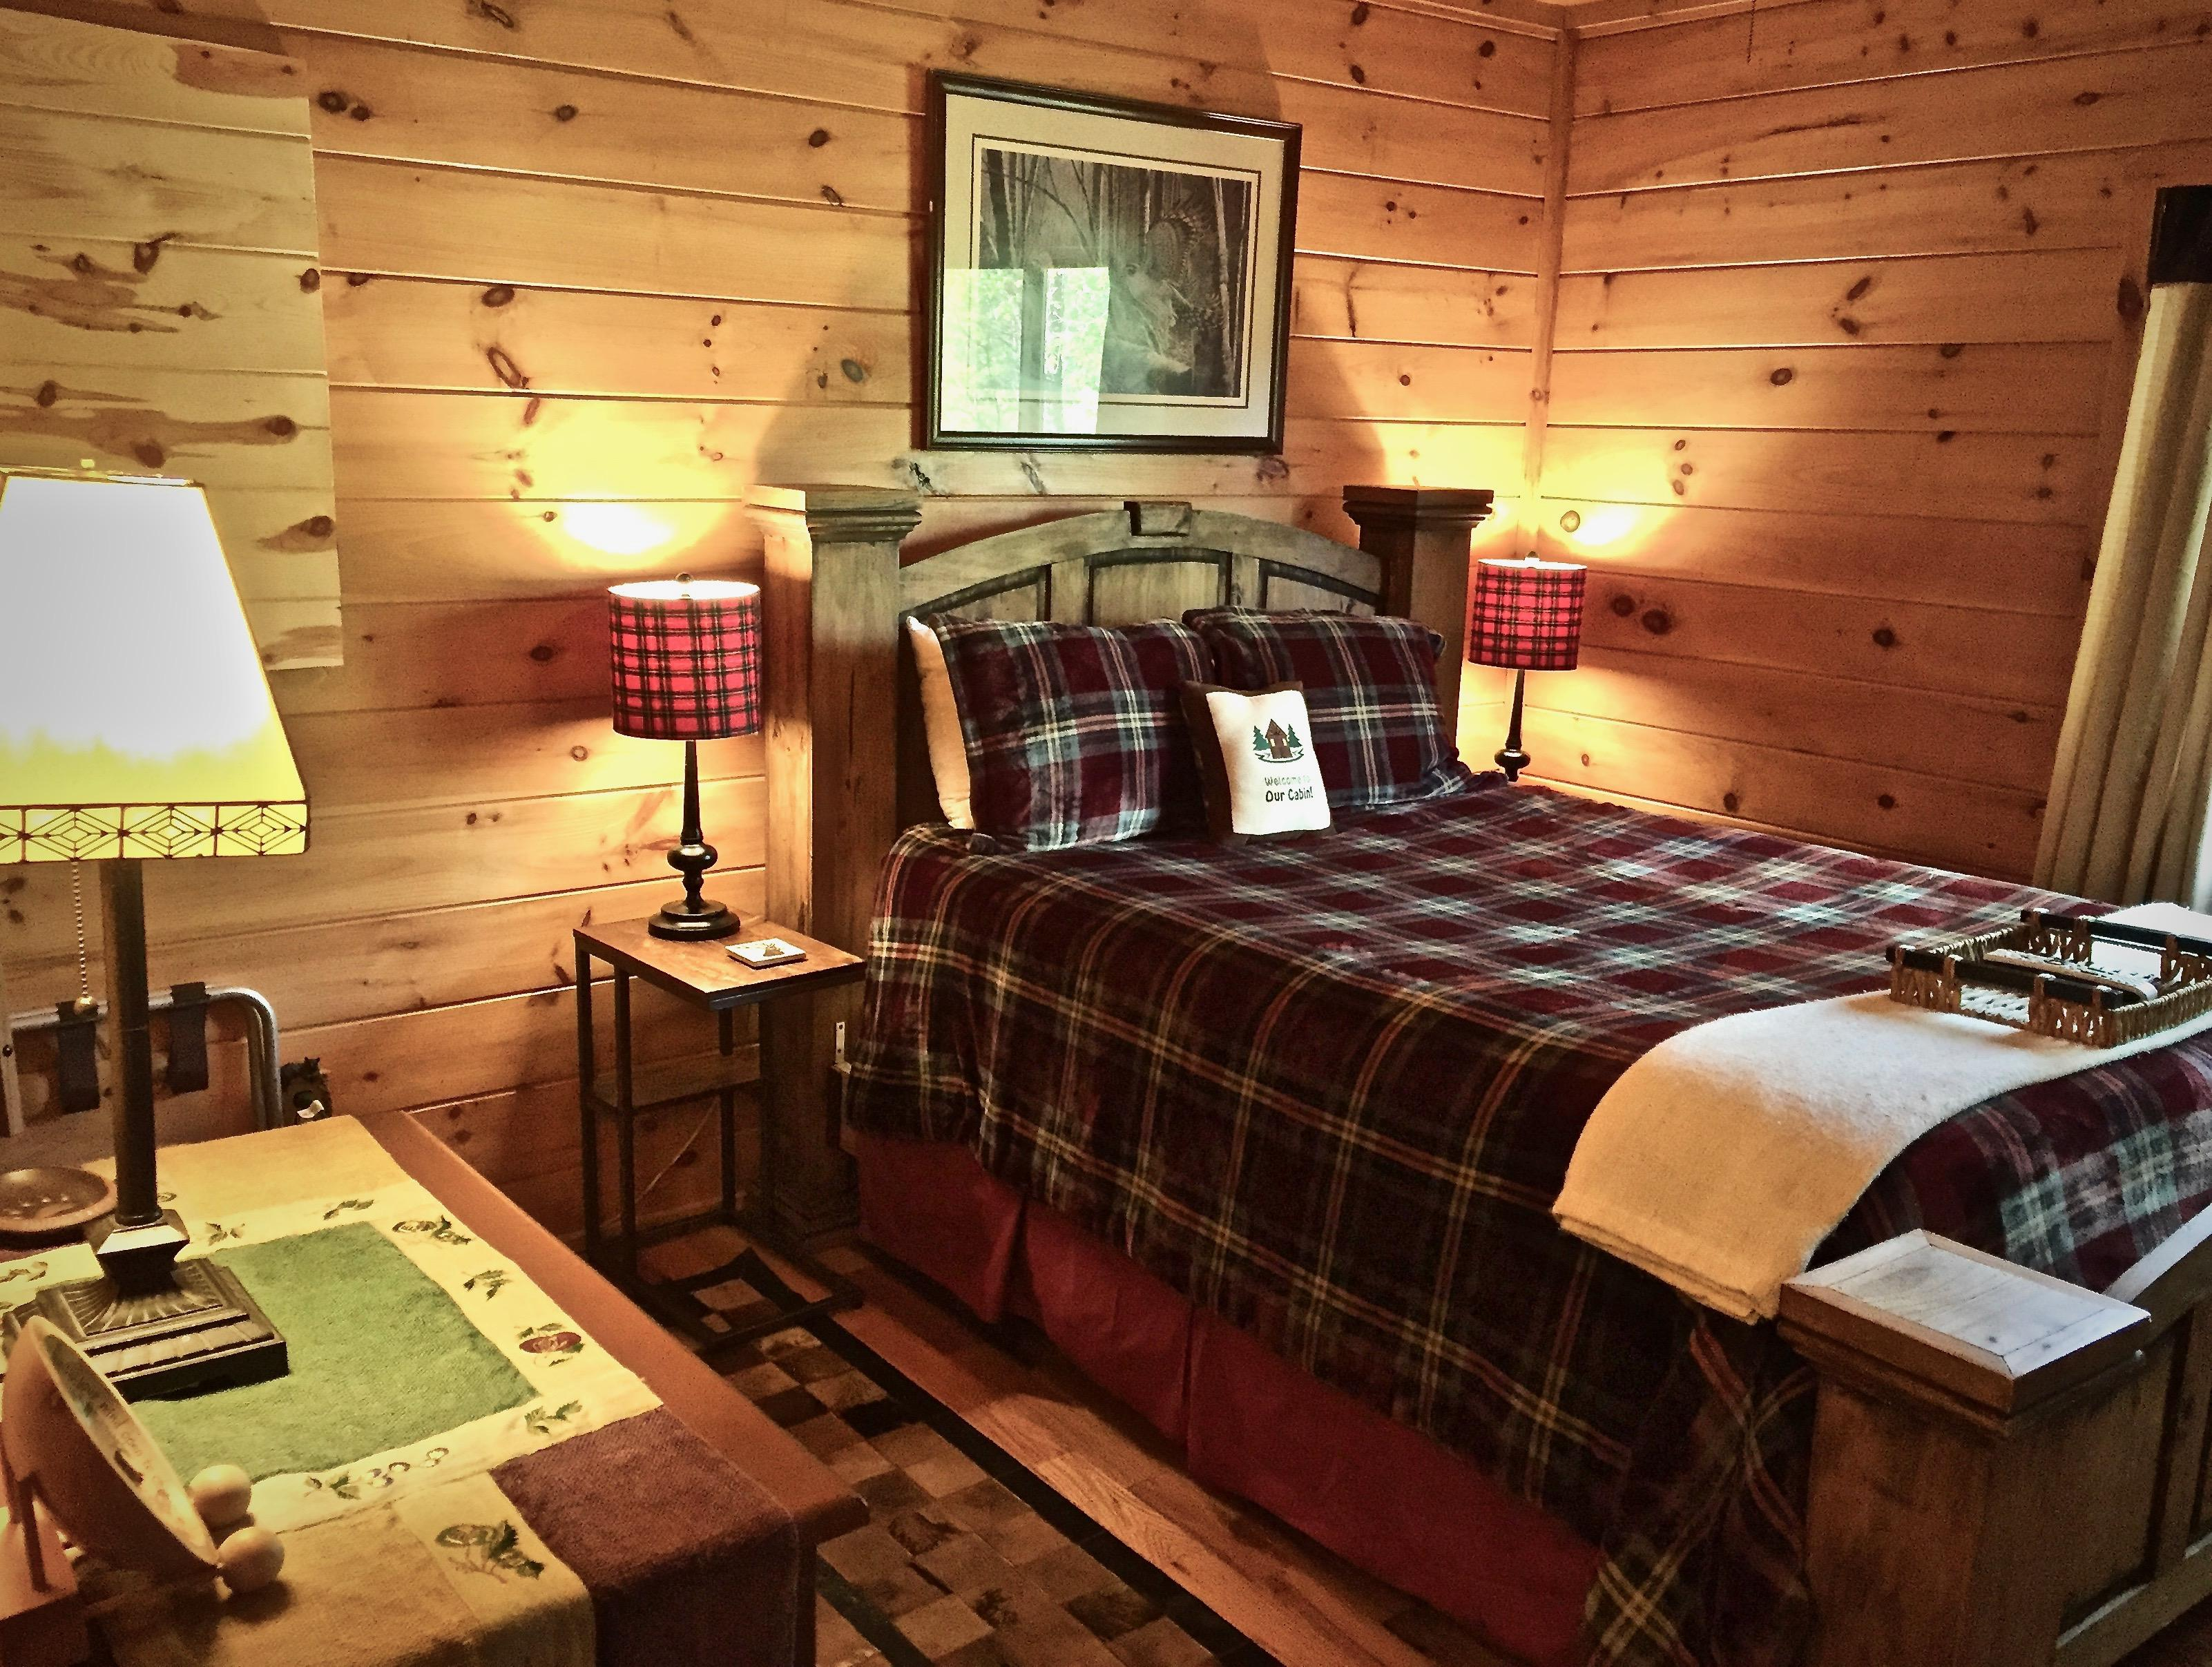 Luxurious Linens - Soft Bedding - and a Flat Screen TV in each Bedroom...